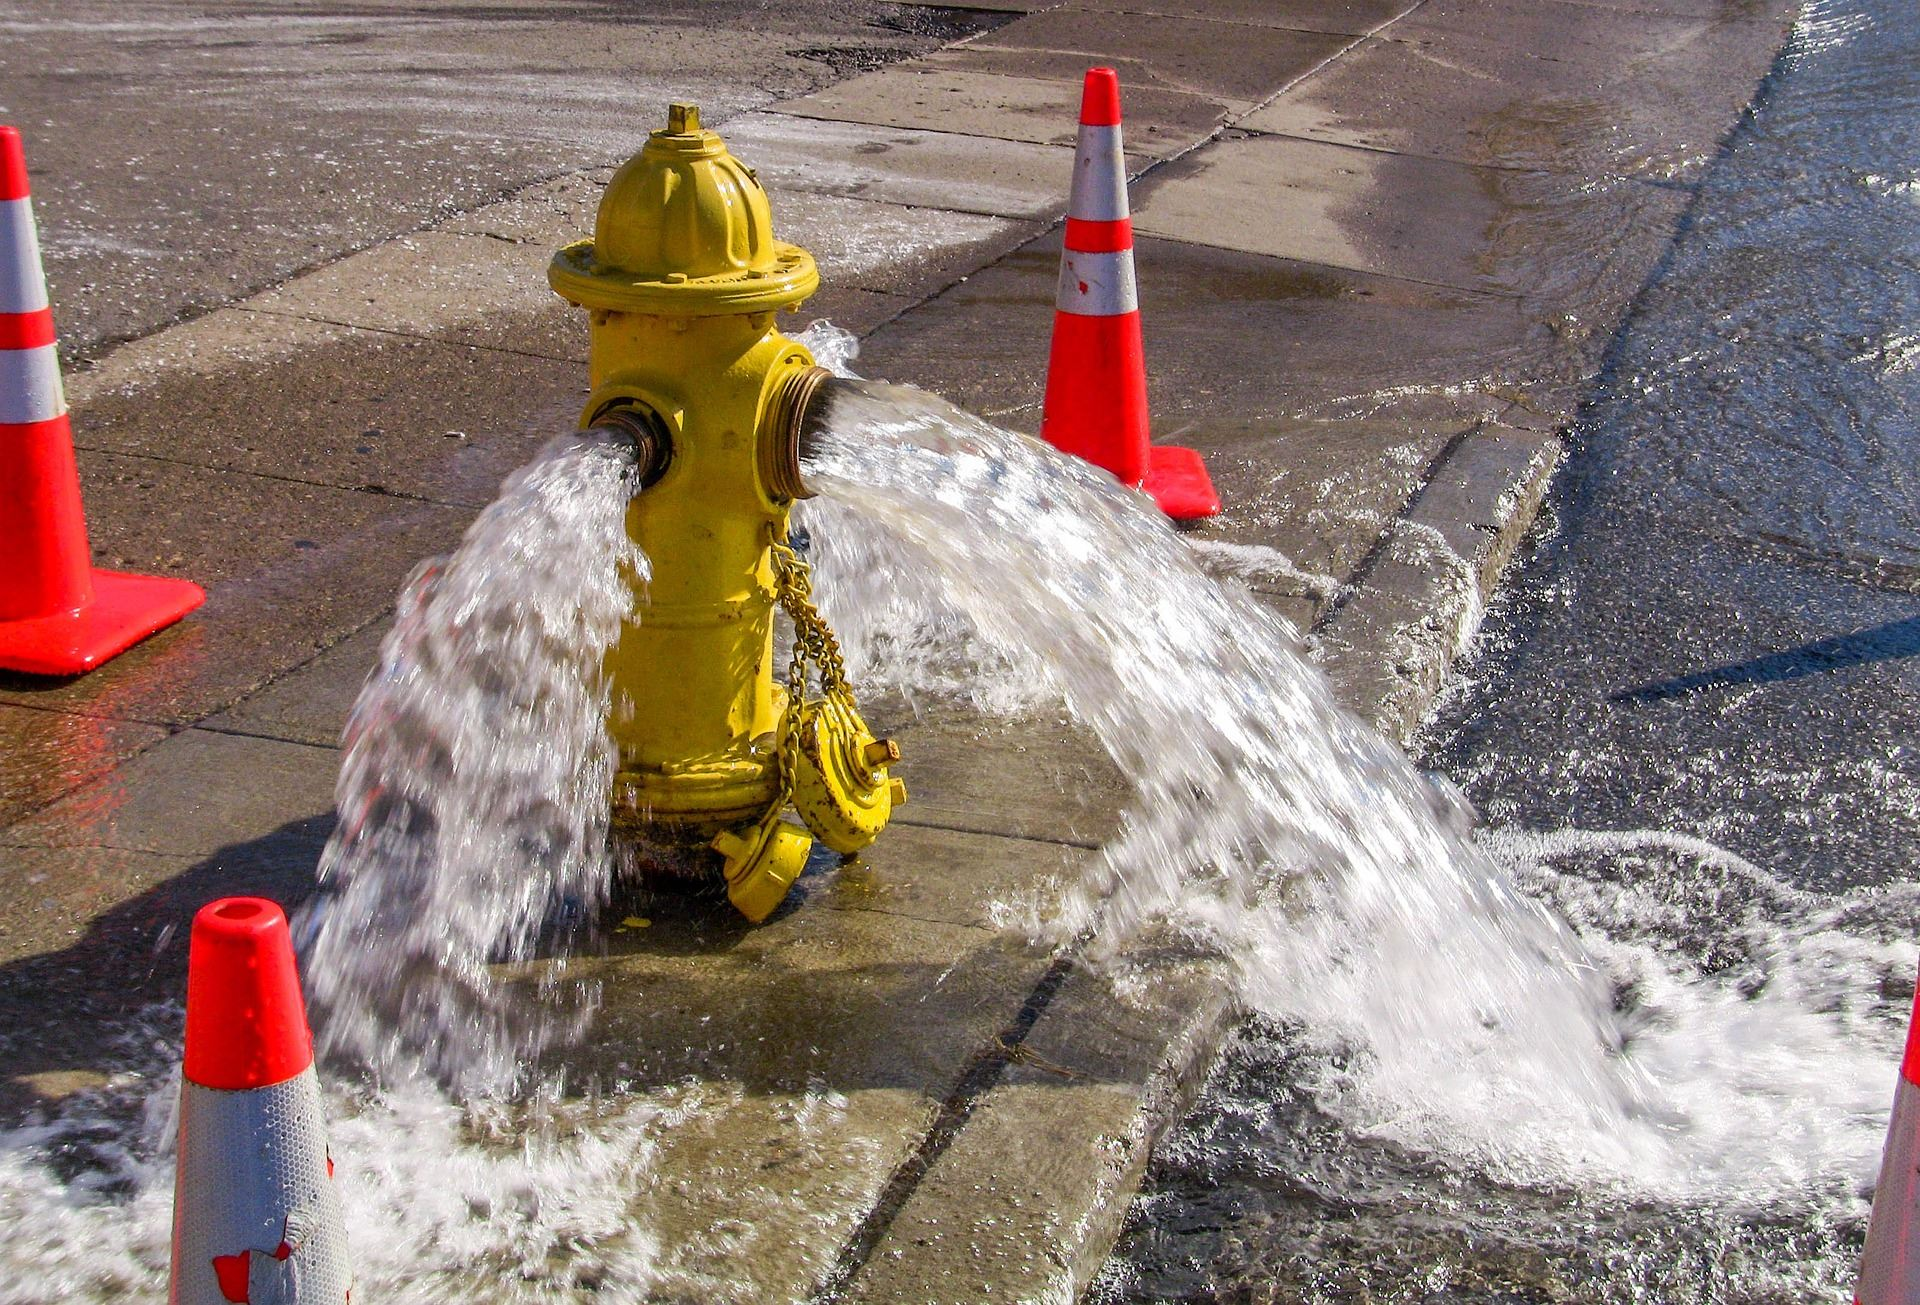 fire hydrant spraying